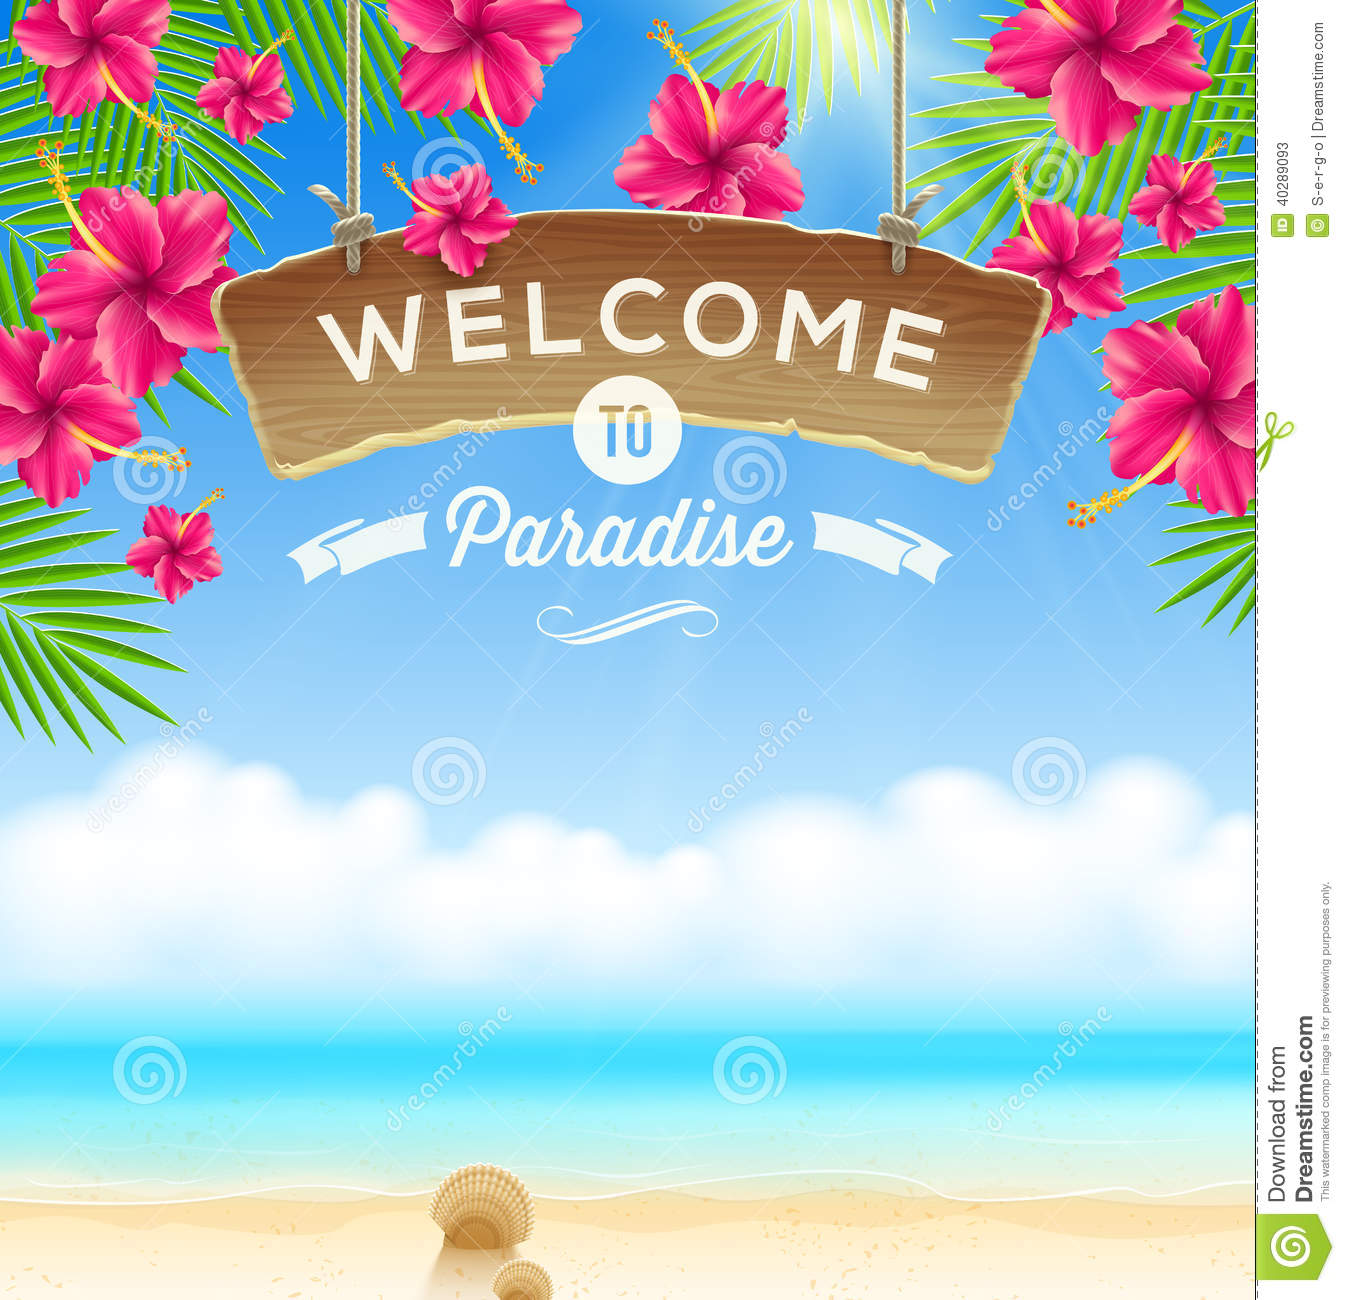 Holiday Home Design Ideas: Summer Holidays Design Stock Vector. Illustration Of Beach